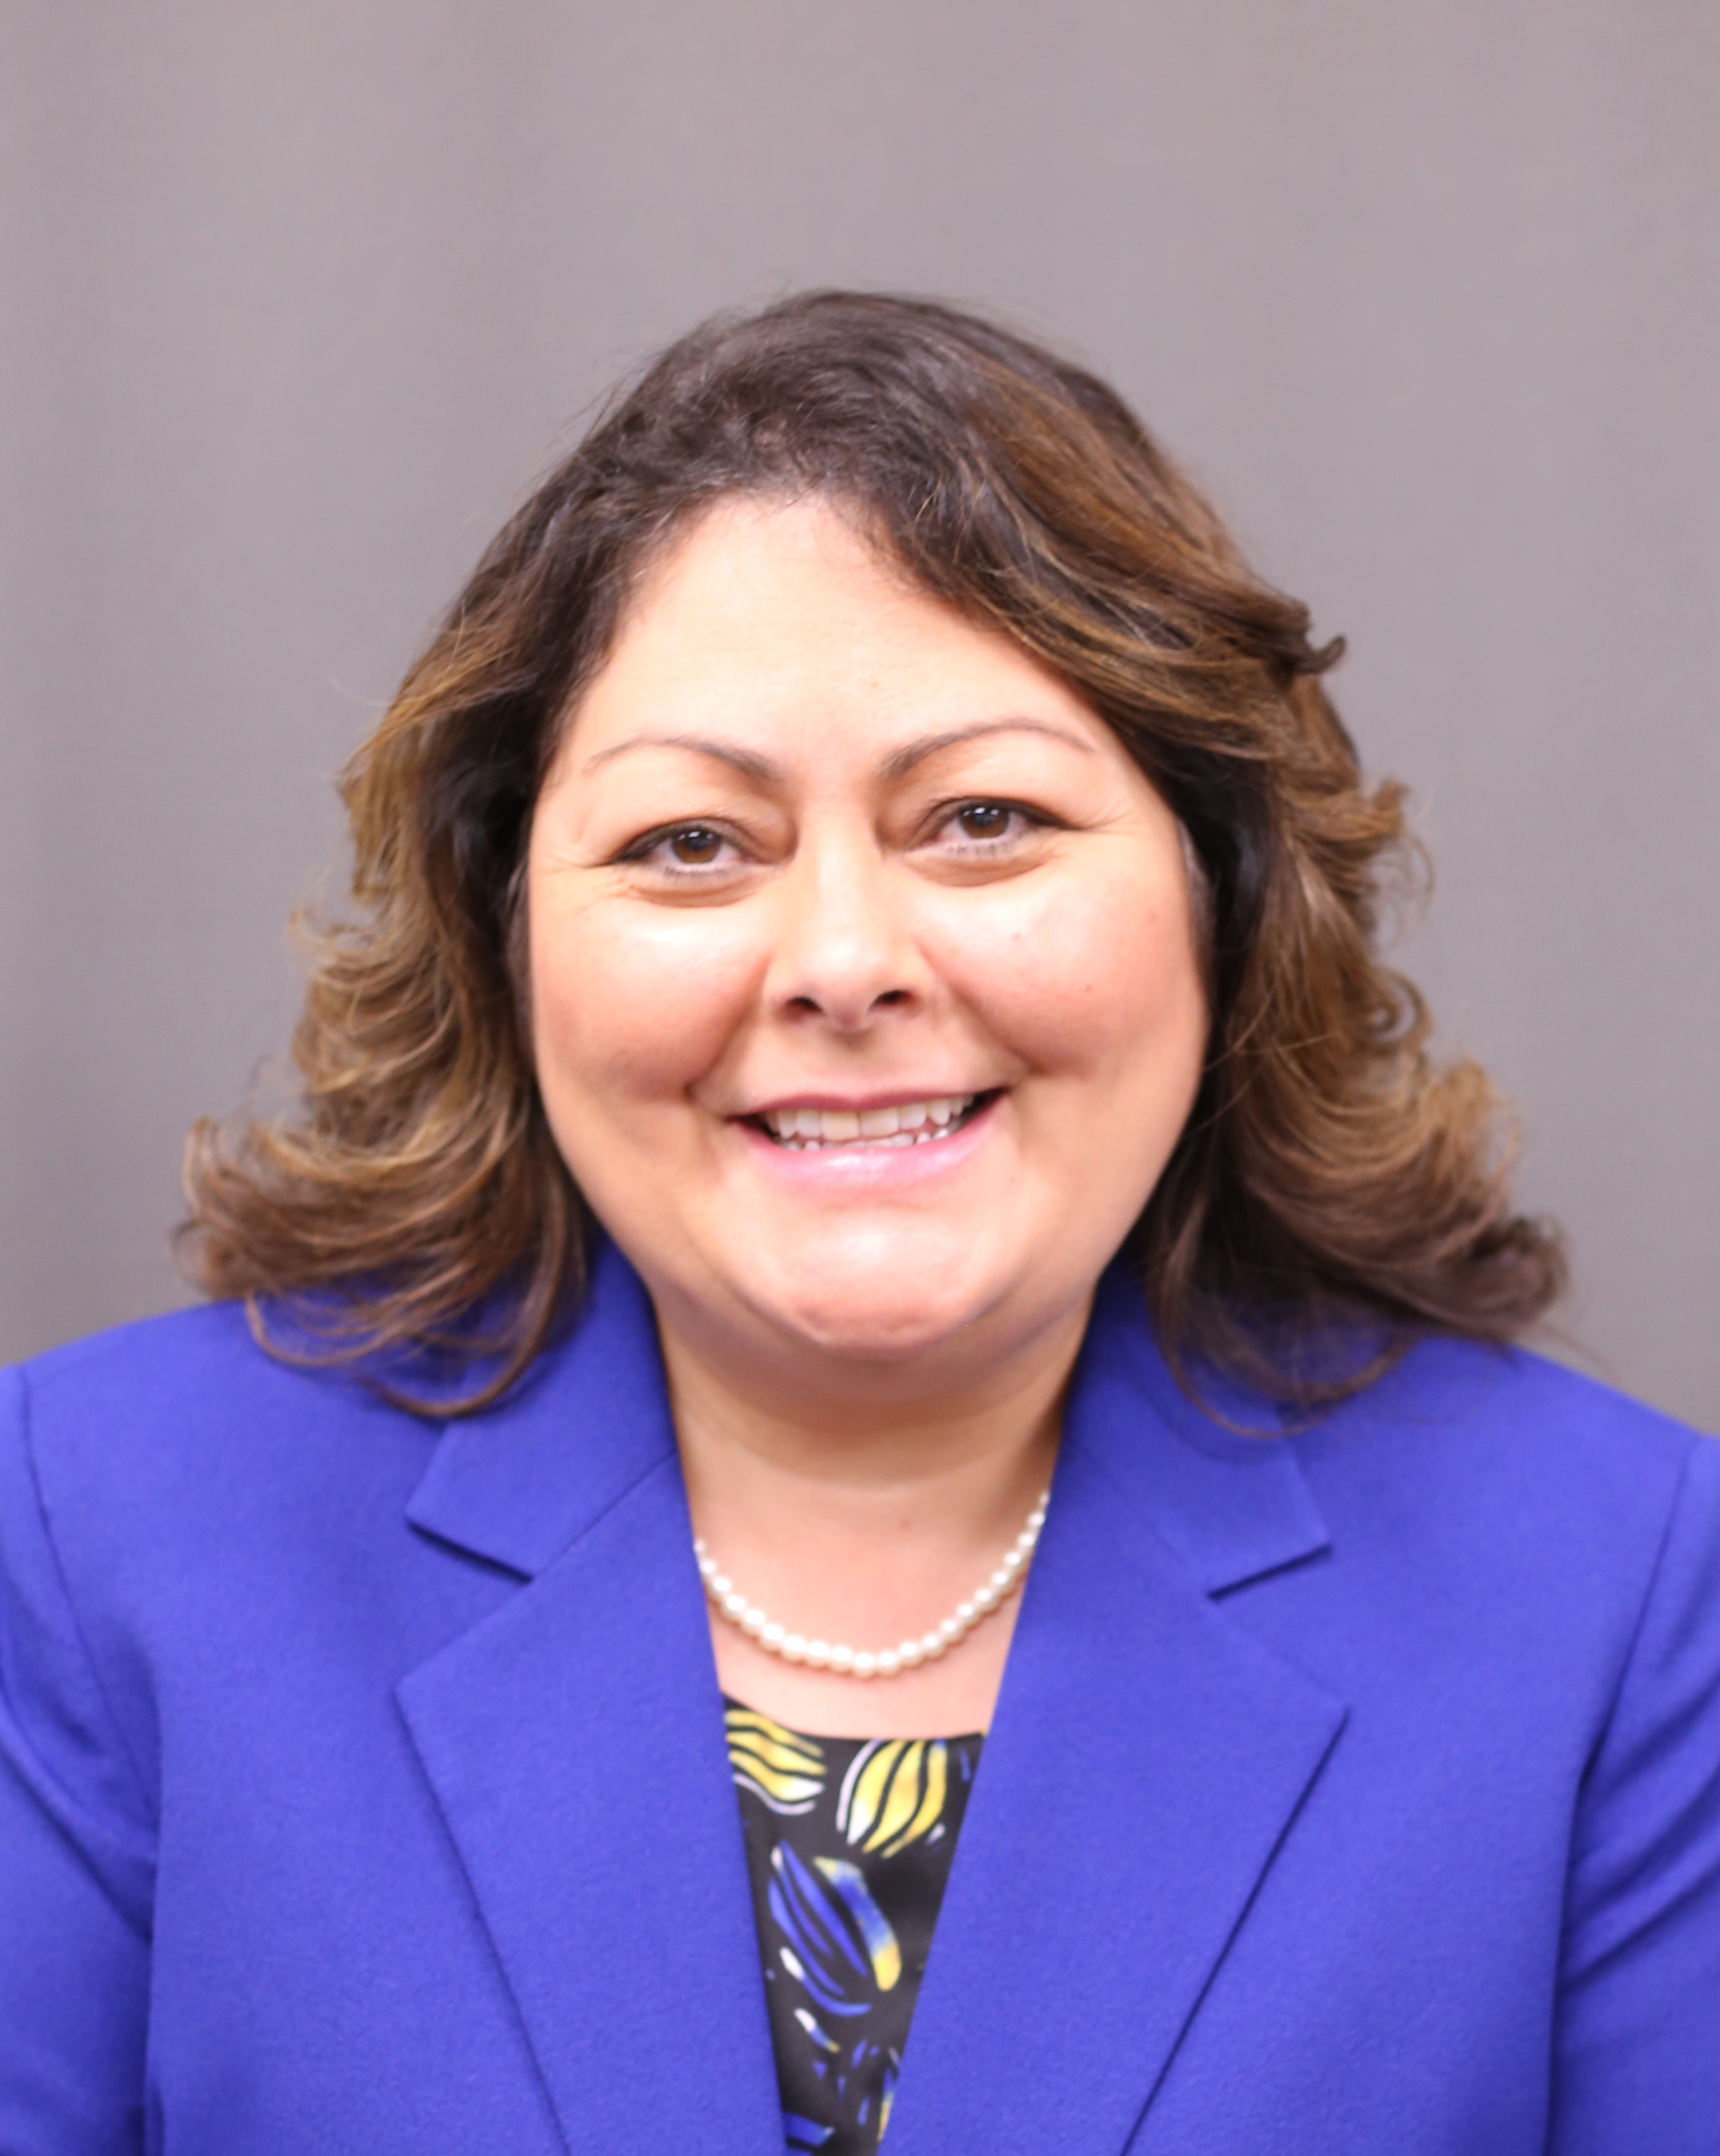 Shawnie Hays, Dean of Students